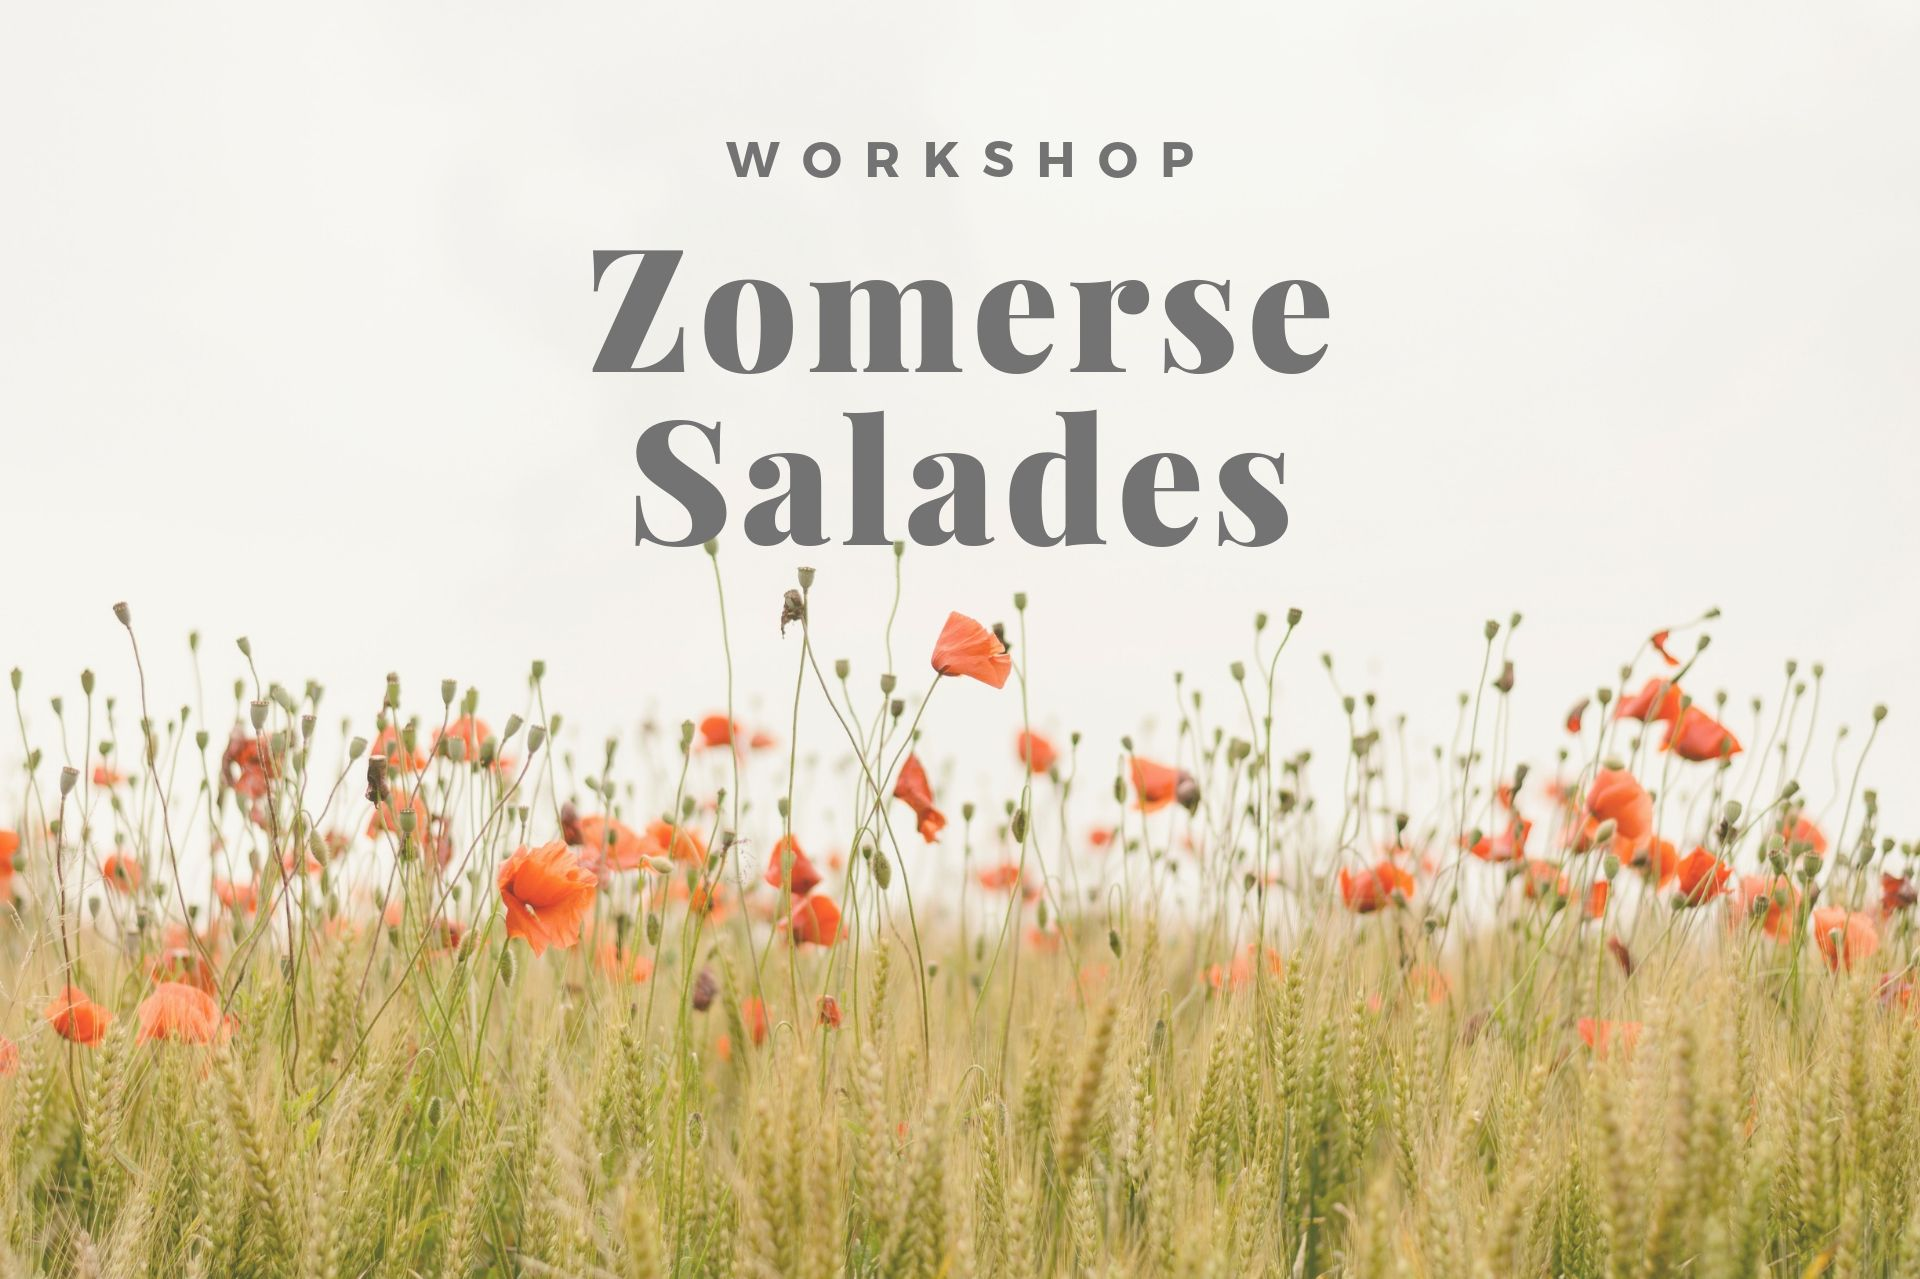 Workshop Zomerse Salades thumbnail